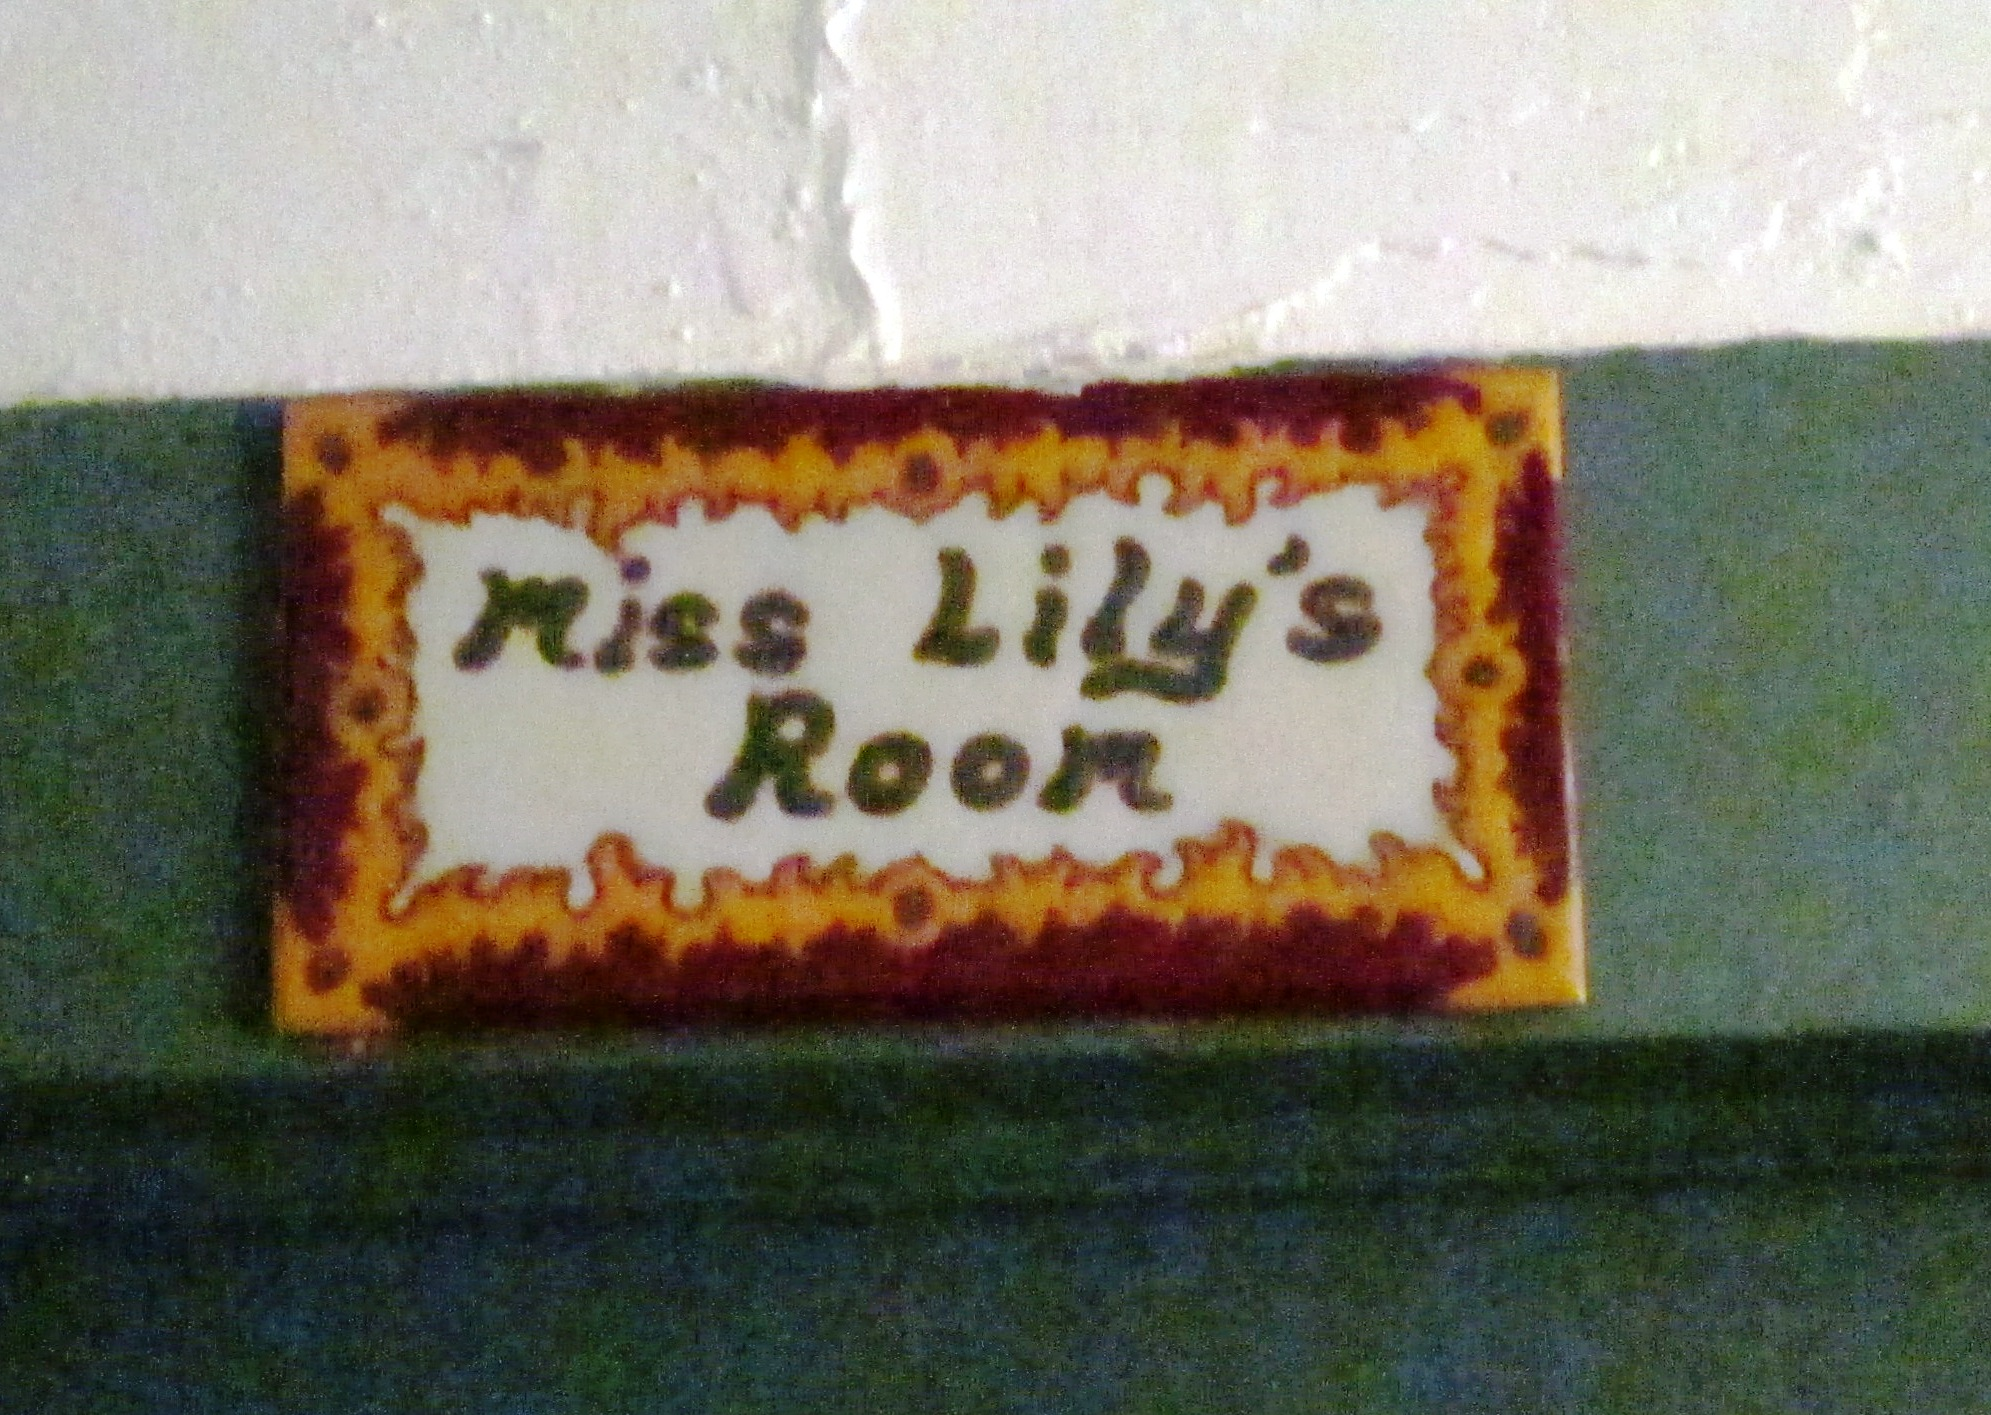 Miss Lily's room